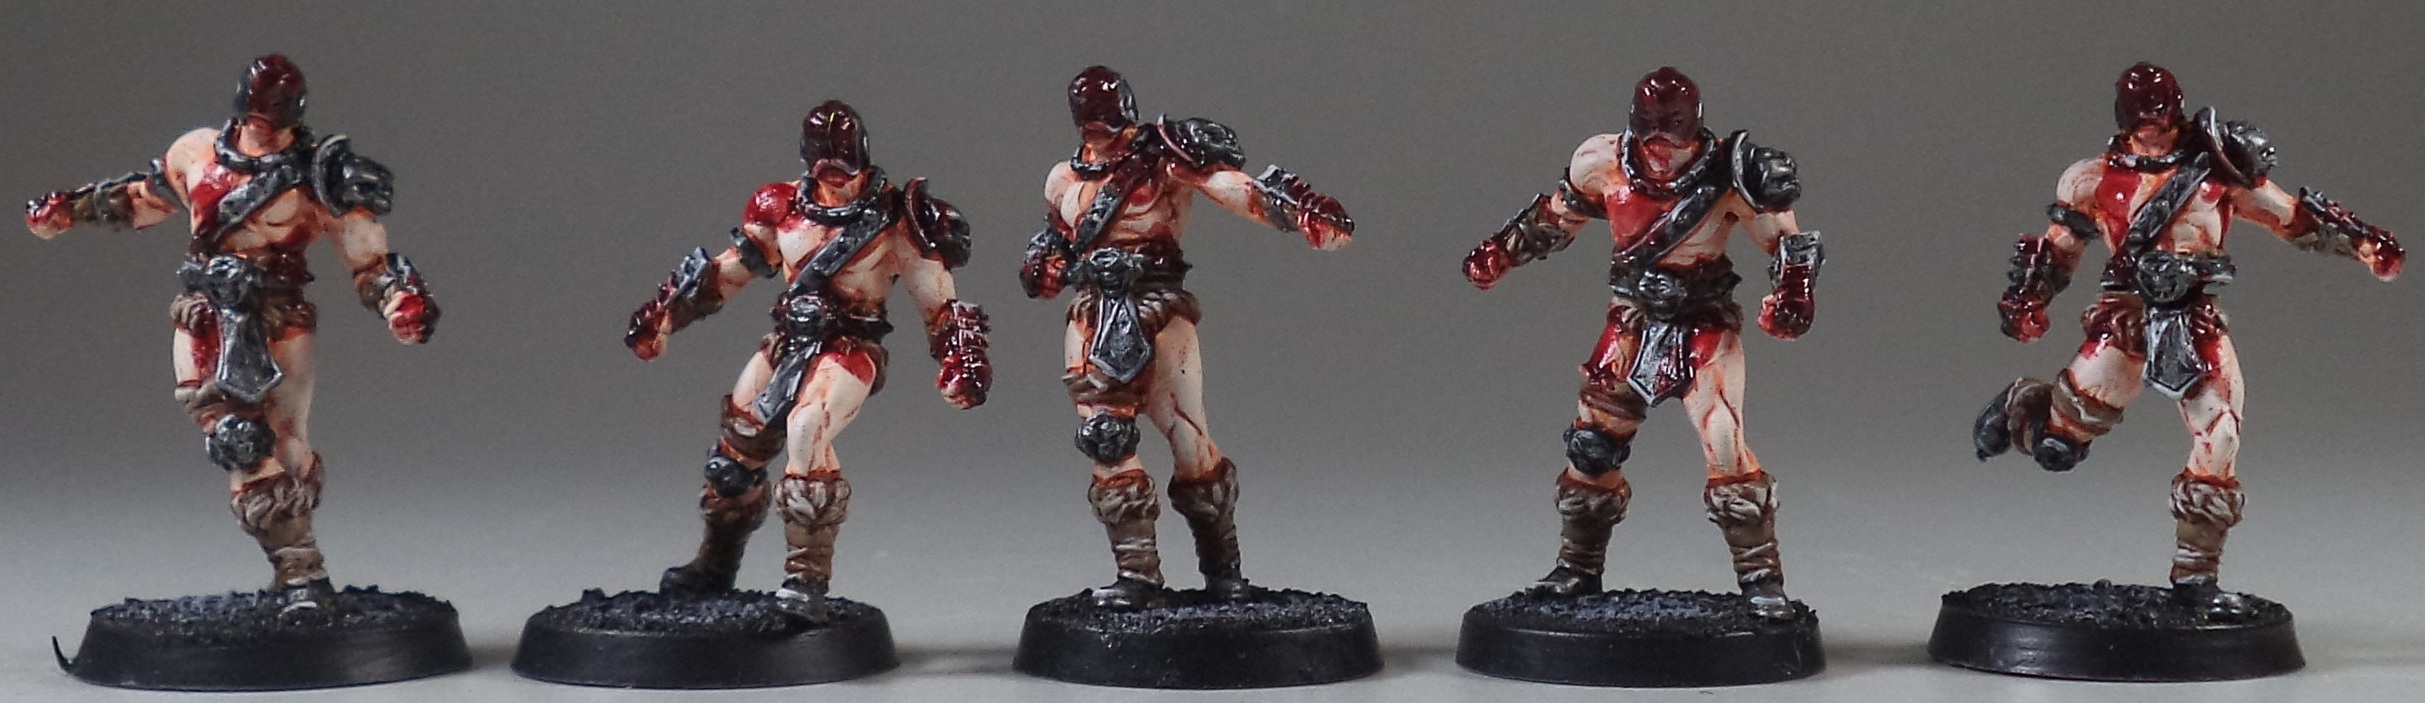 Paintedfigs+Miniature+Painting+Service+Bloodbowl+5.jpg